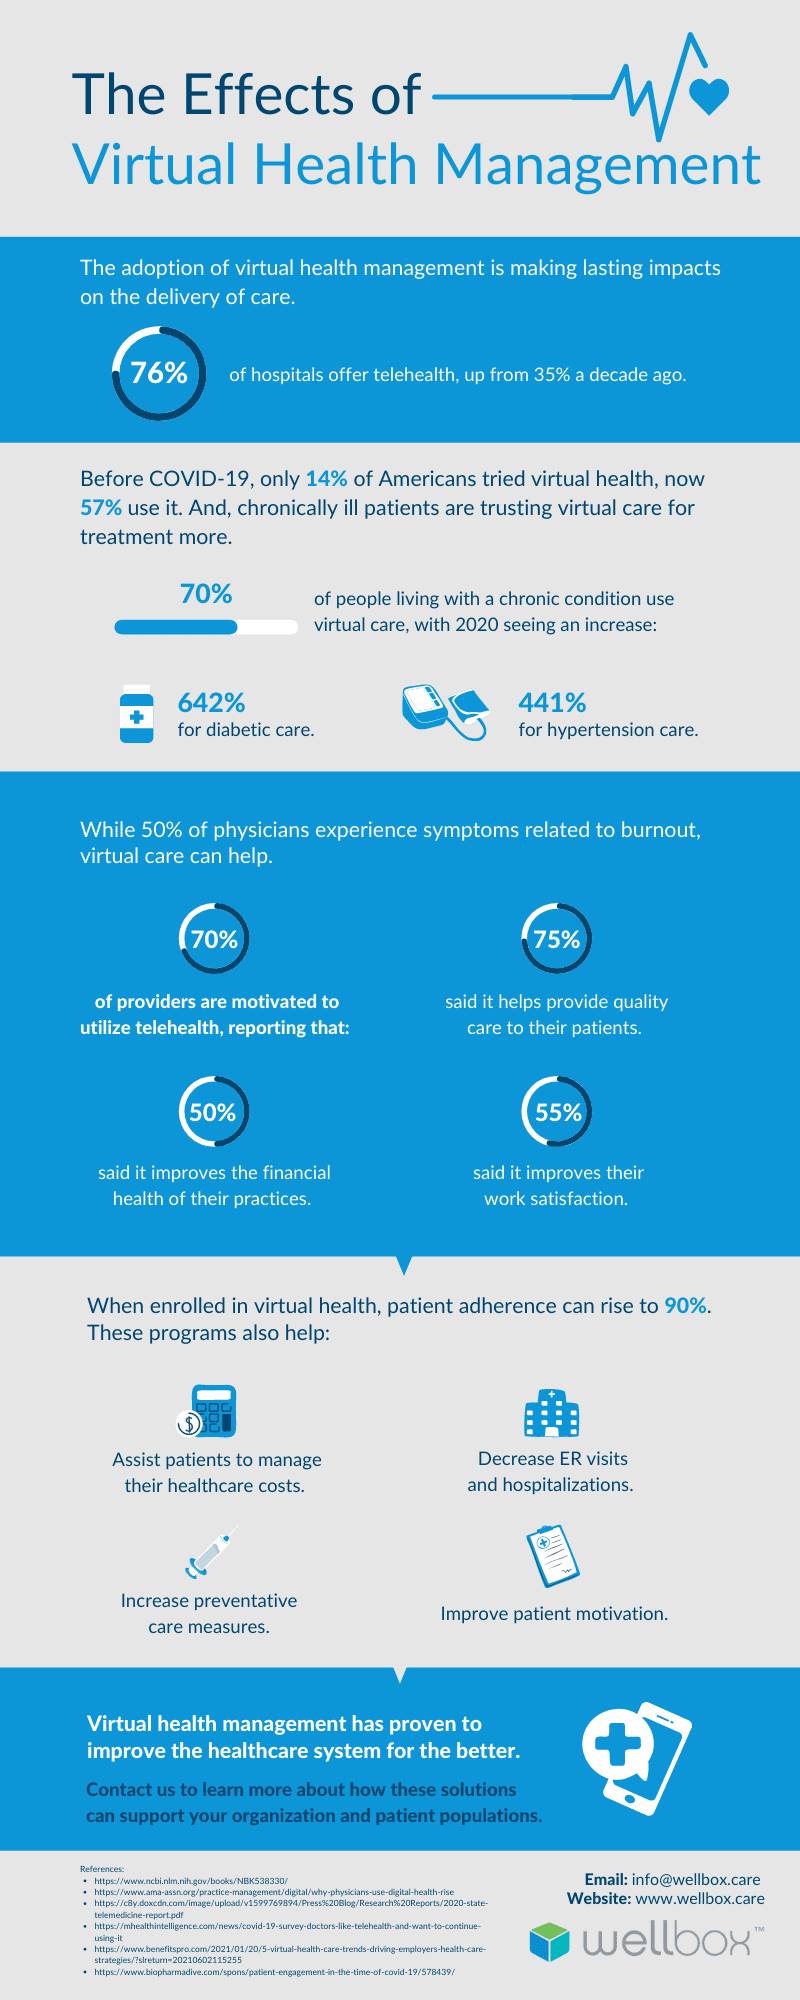 Discover a few positive effects virtual health management has had on the healthcare industry by checking out the infographic.